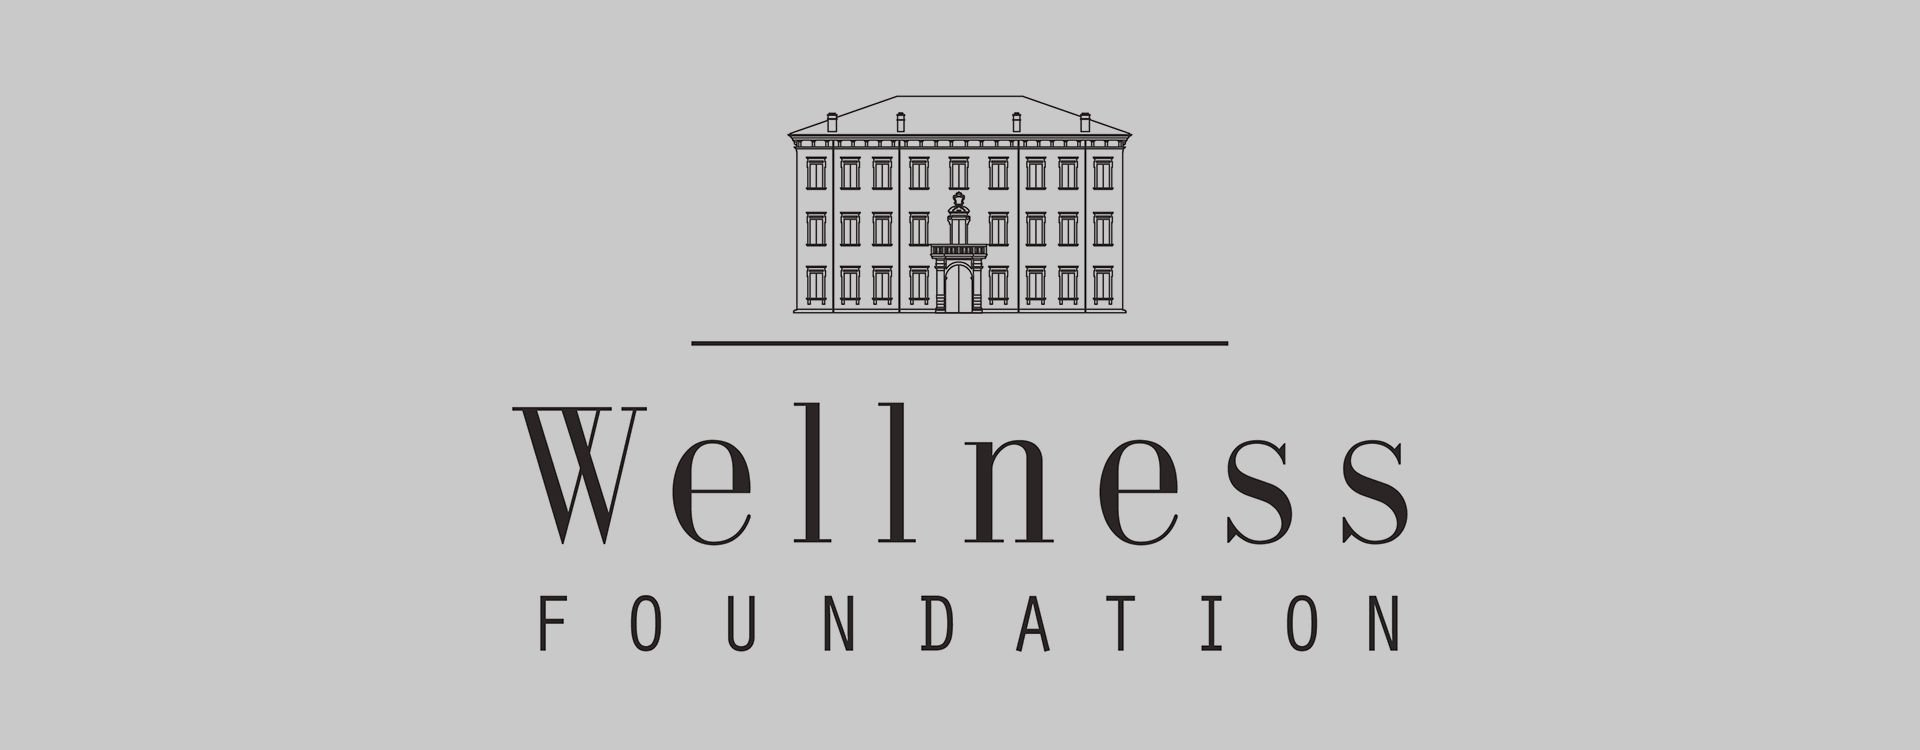 The Wellness Foundation